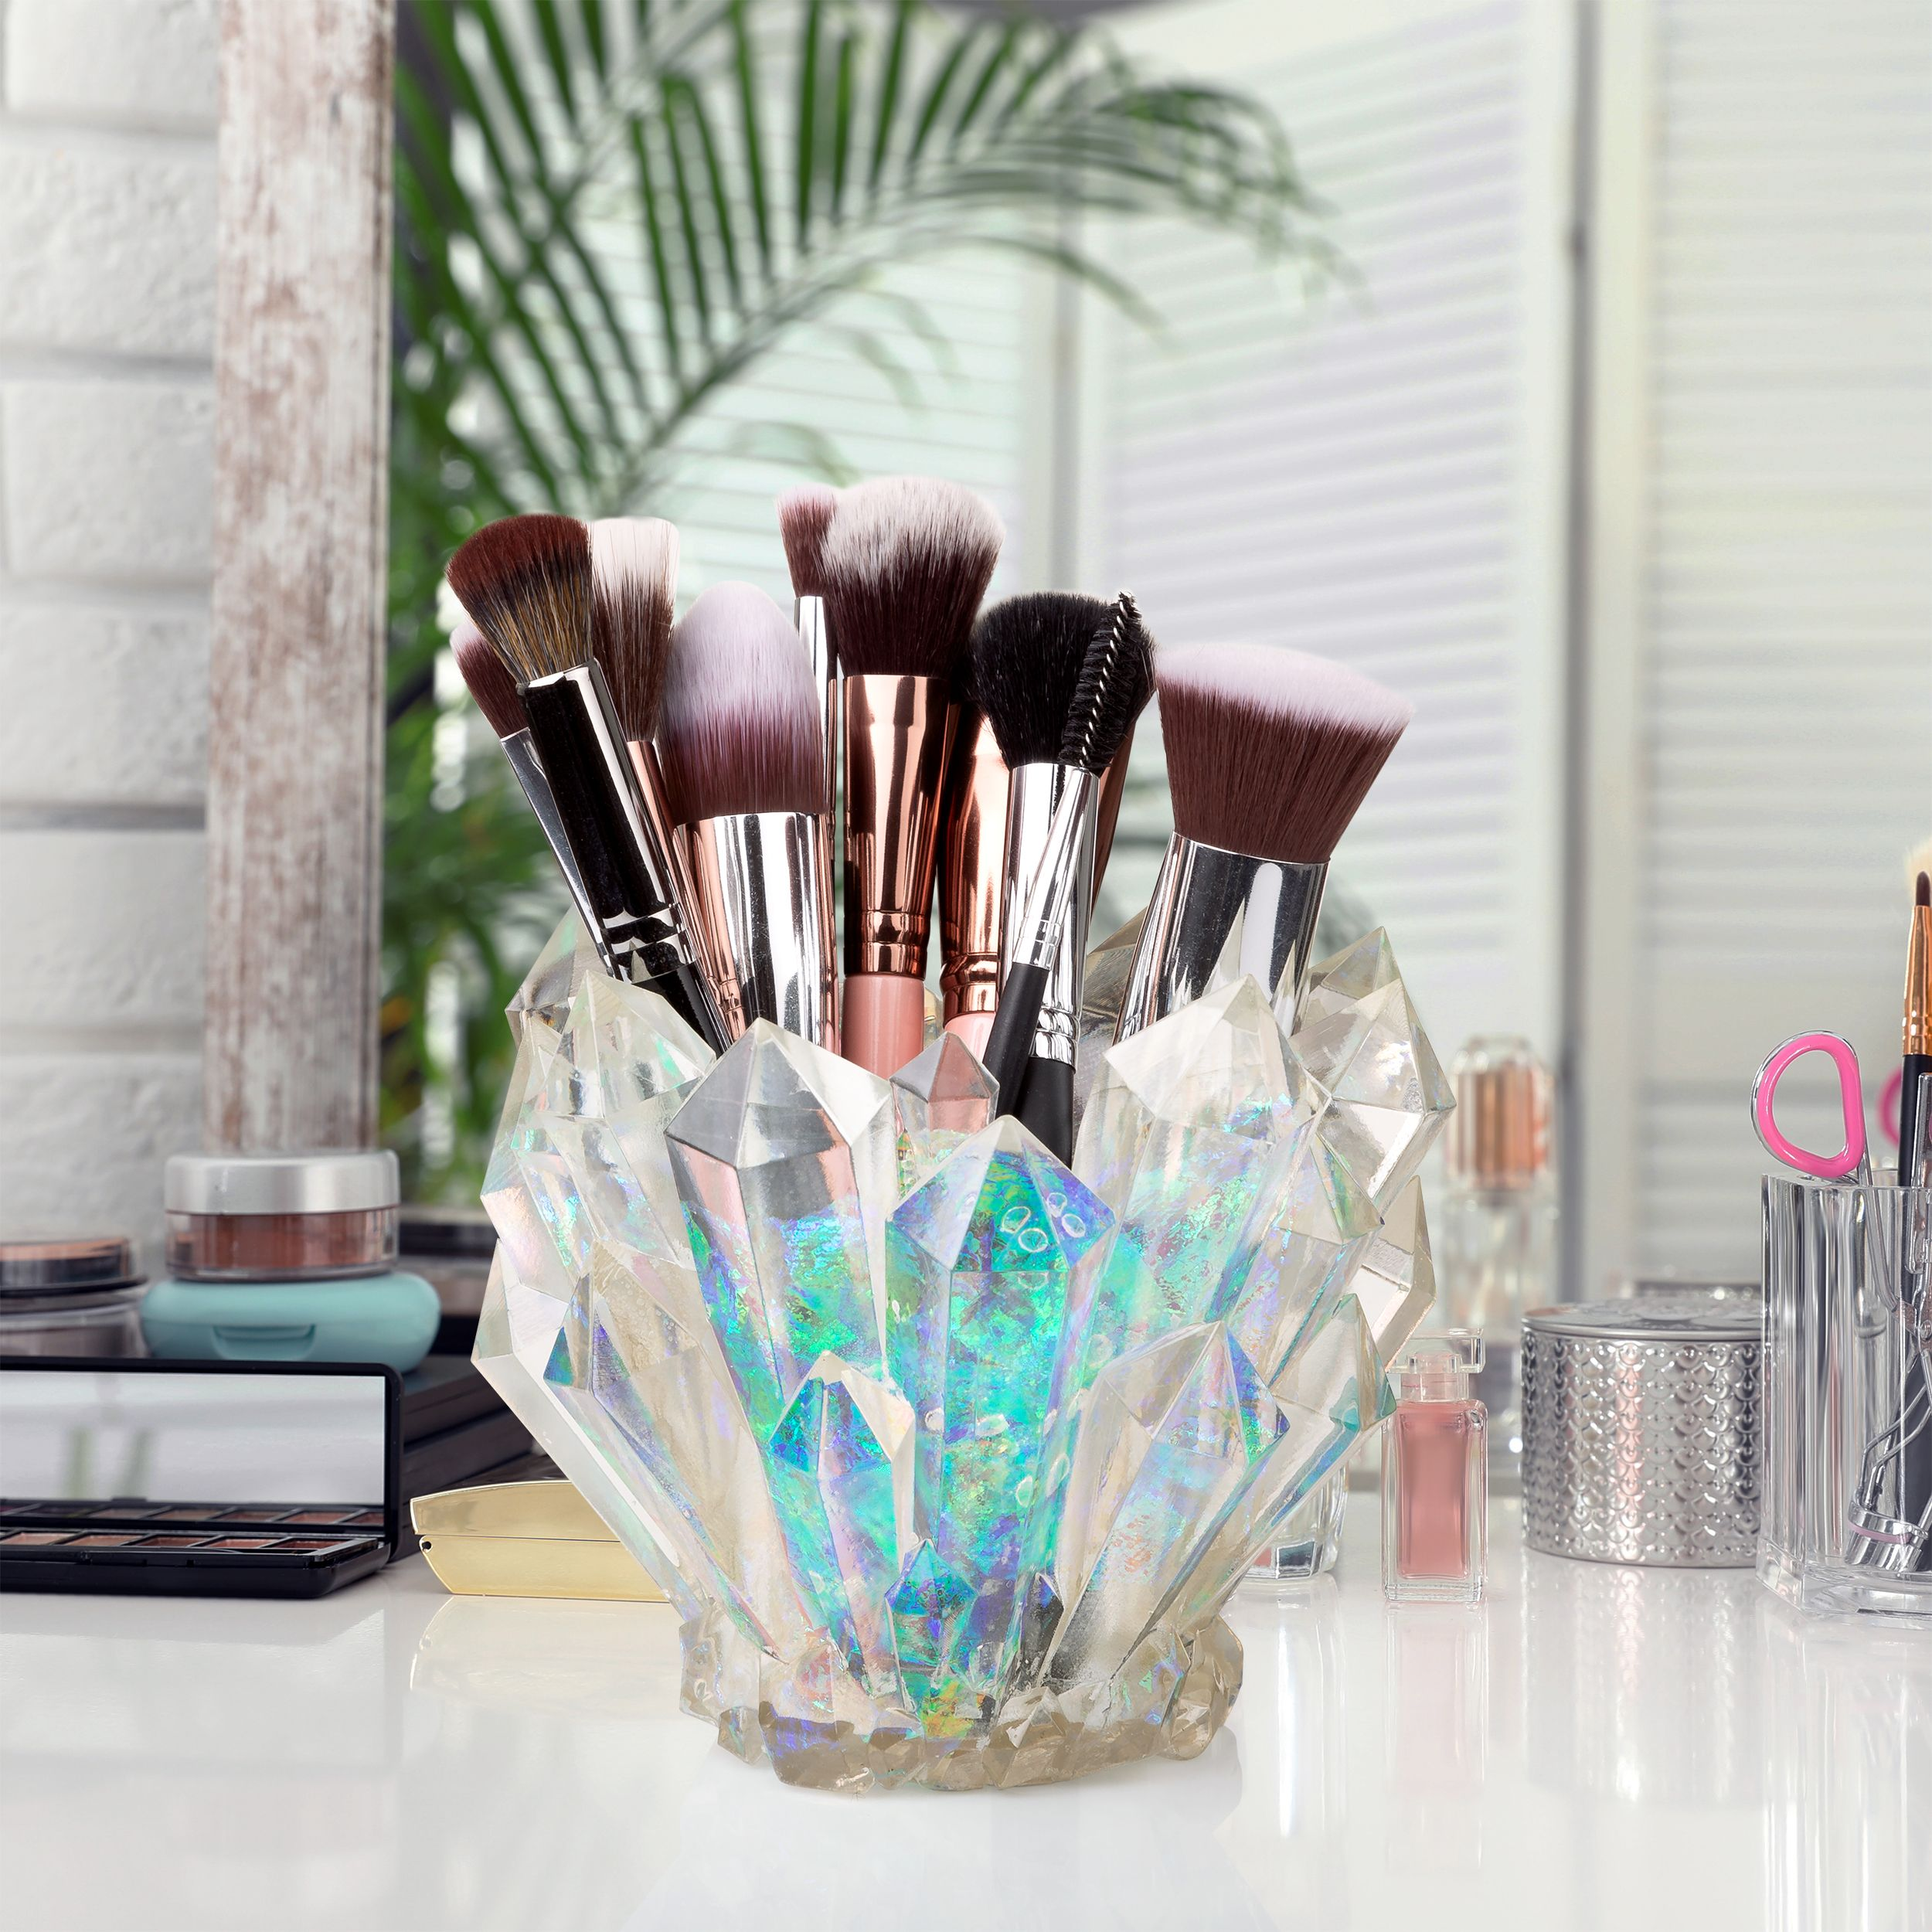 Pin on Wicked Vanity Beauty makeup brush holder